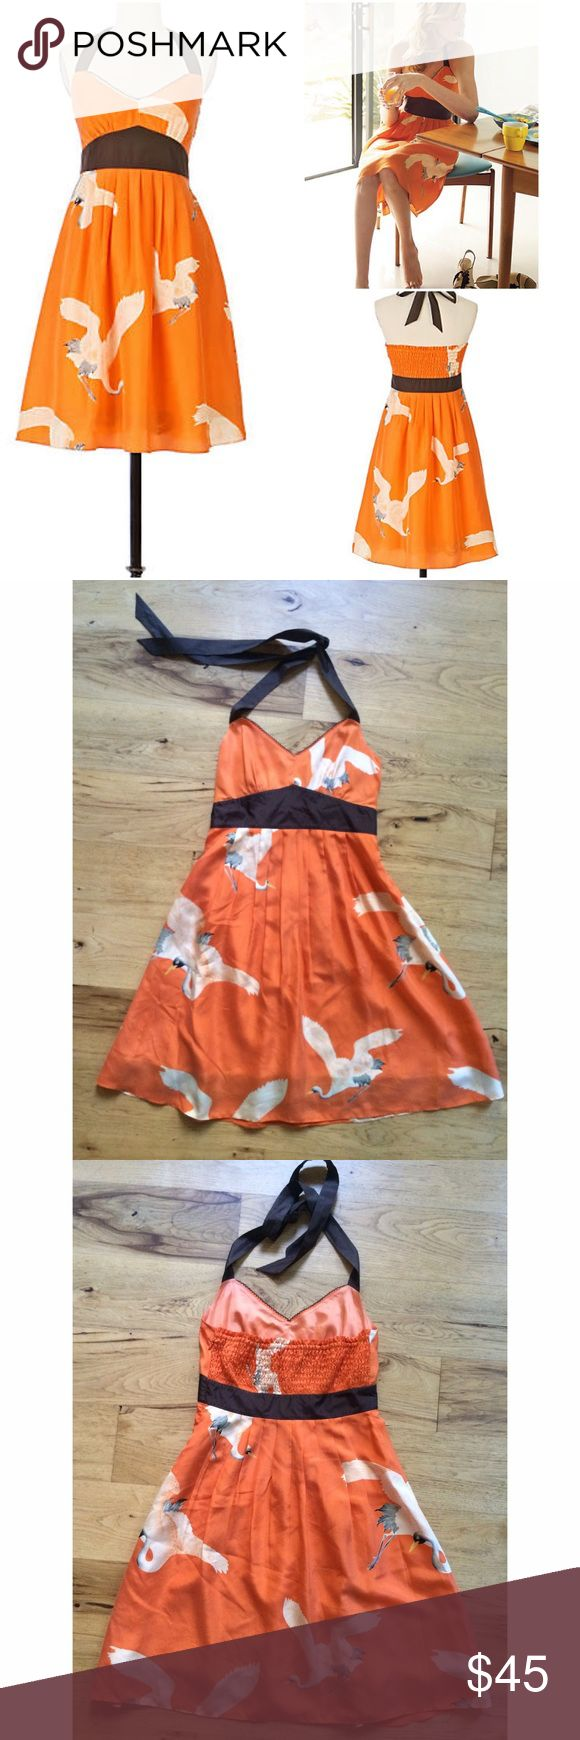 "Moulinette Soeurs Bird Crane Sandhill Halter Dress Gorgeous Anthropologie halter dress in size 6, like a medium. Long-limbed cranes soar against a feather-soft orange silk sky, as a wide waistband creates a deep chocolate horizon. Only flaw is in the back, see last pic. Not noticeable when wearing it. Can't remember how it got there. Price reflect the flaw.  Side pockets  Side zip  Silk; acetate lining  Measure about 33"" length, 14"" waist. ❌No trades or modeling. Always open to offers and…"